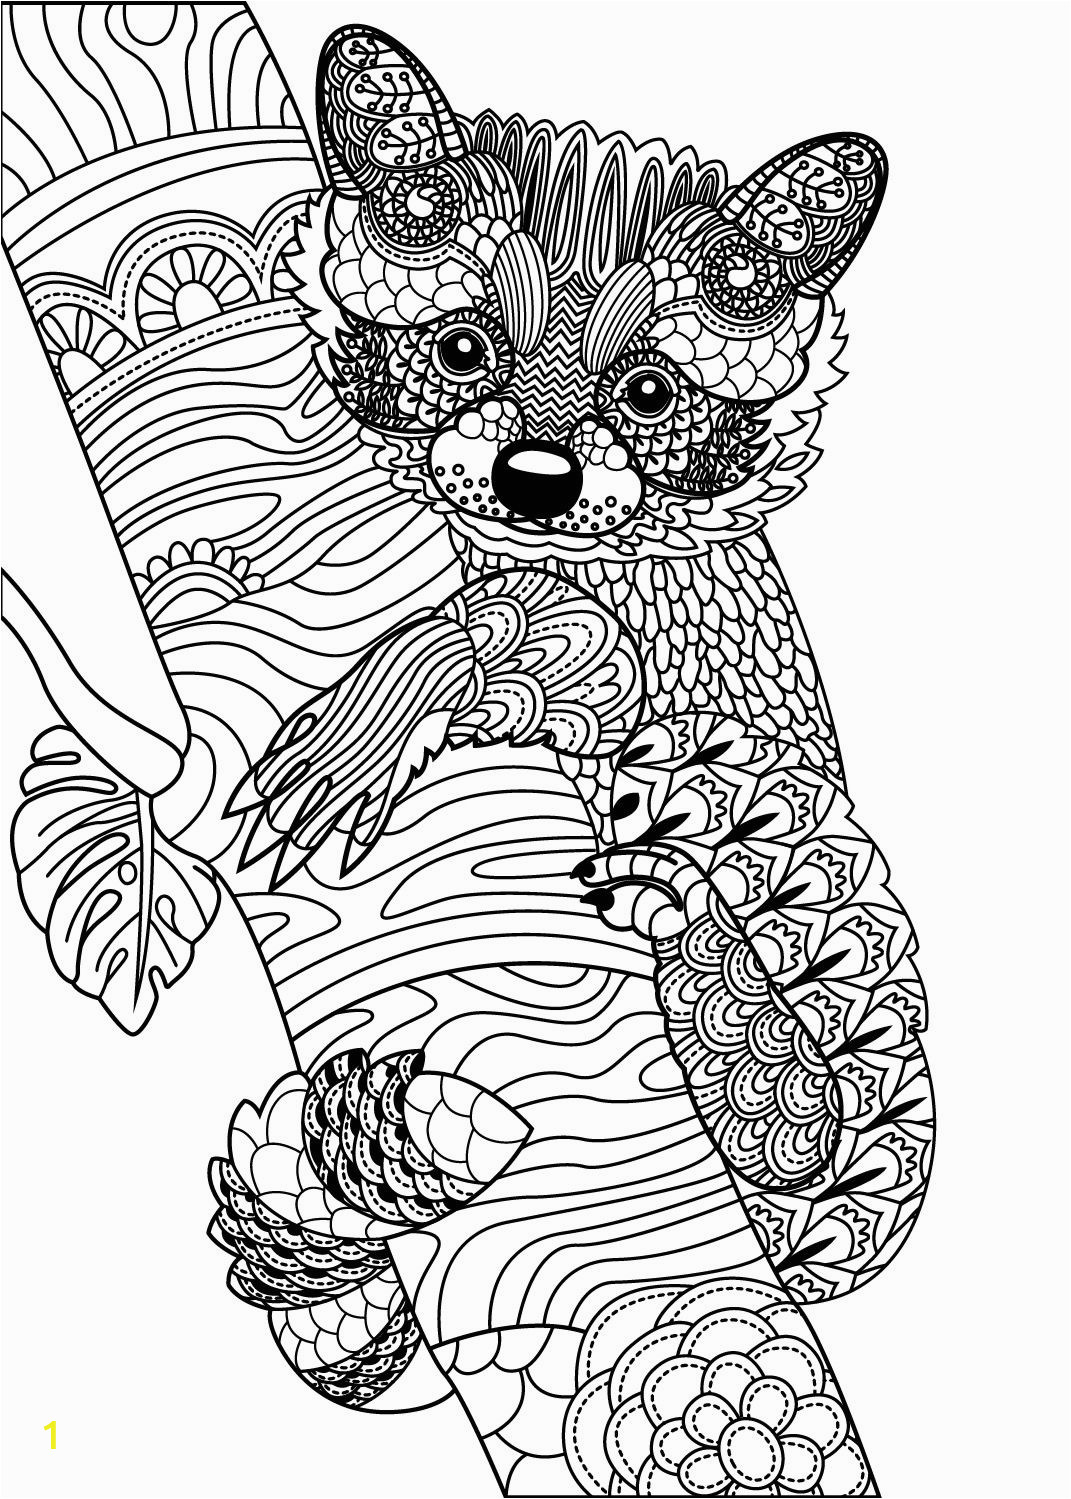 wild animals coloring pages wild animal coloring pages best coloring pages for kids pages wild coloring animals